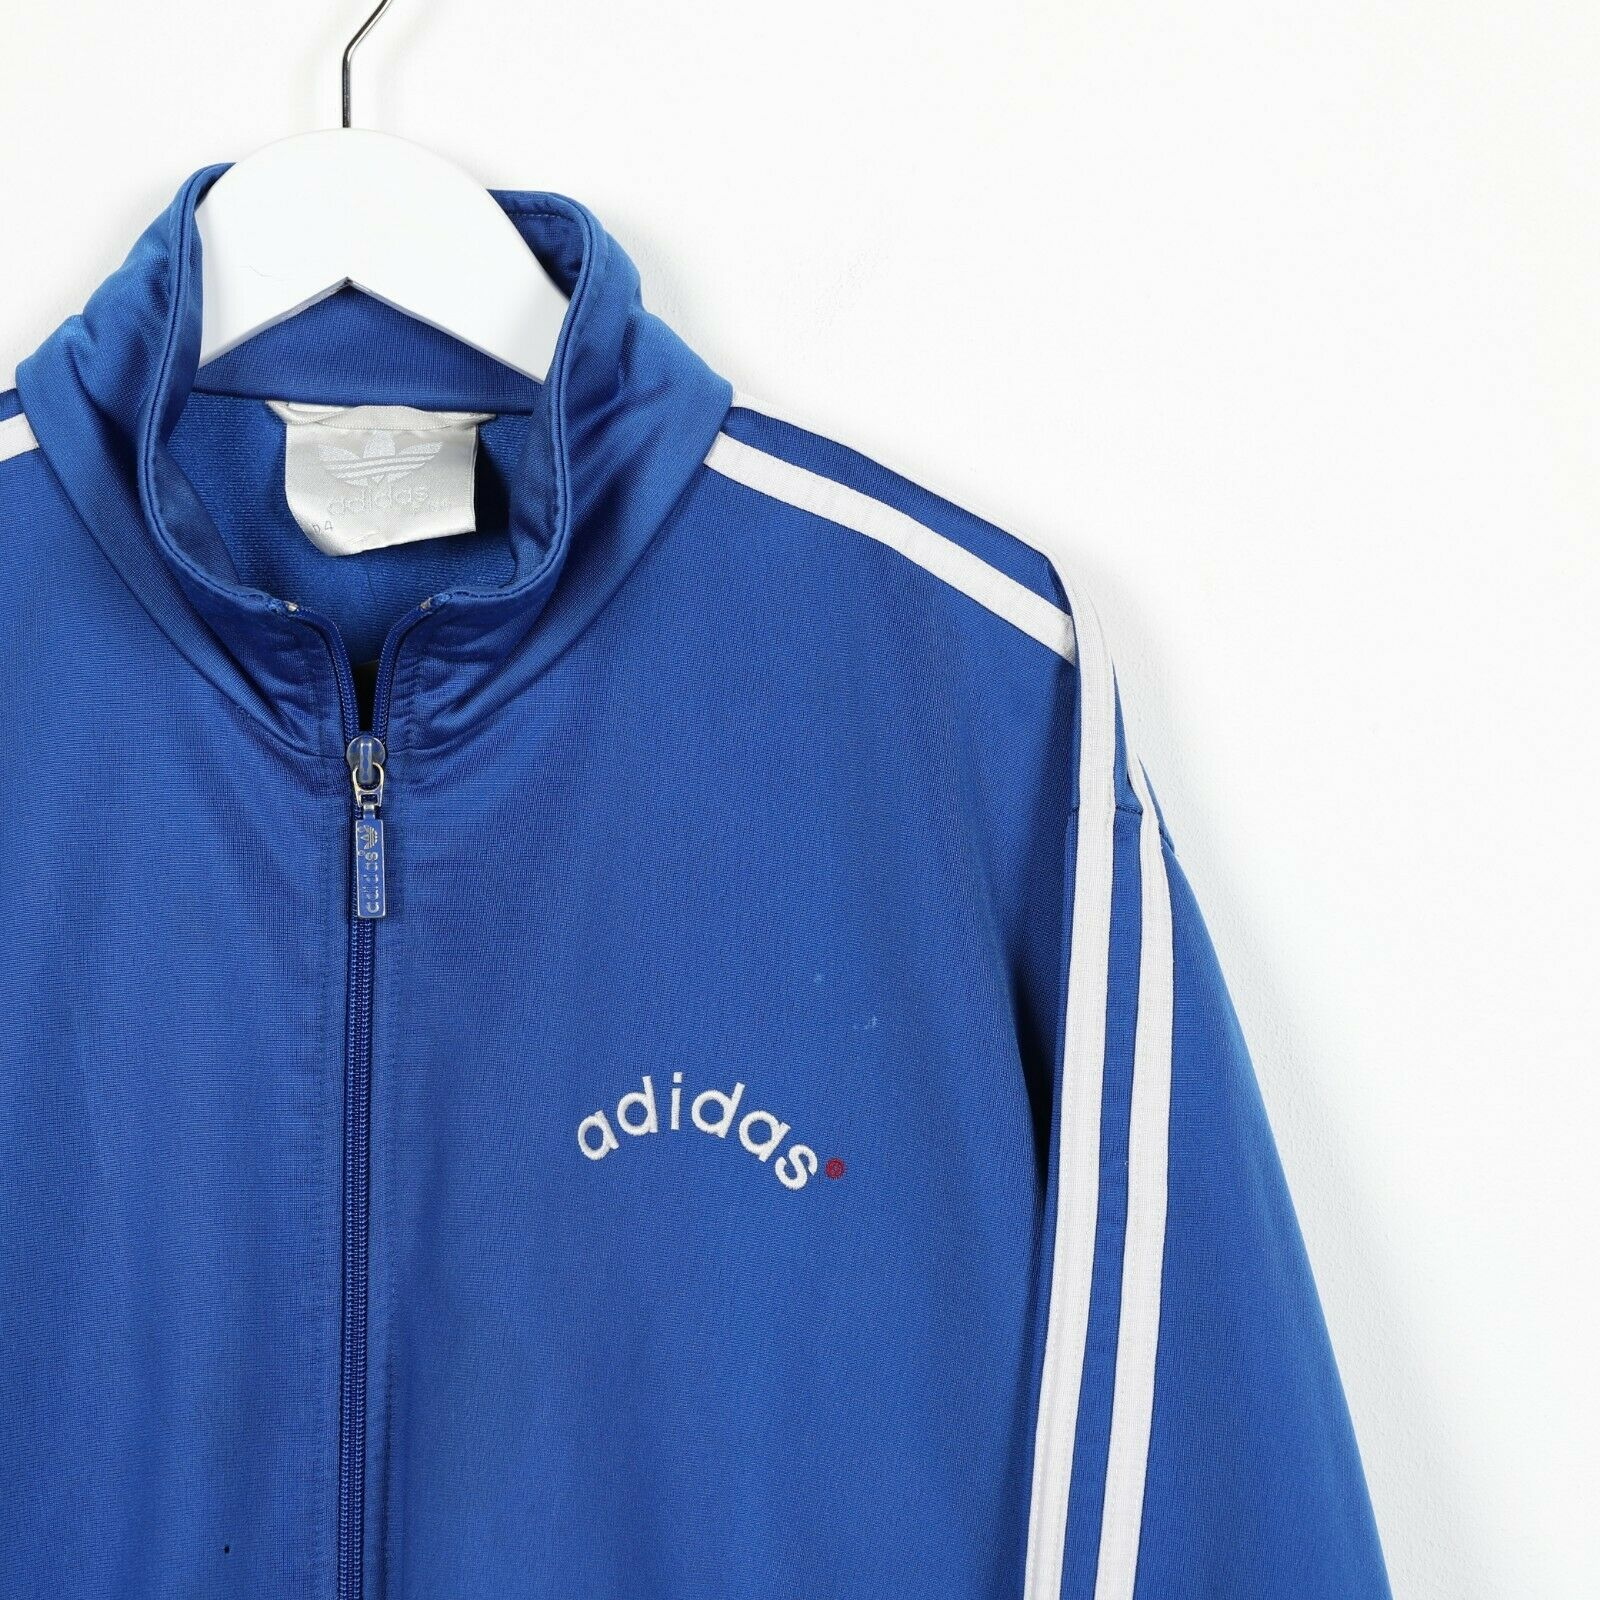 Vintage 80s ADIDAS Small Logo Tracksuit Top Jacket Blue | Medium M